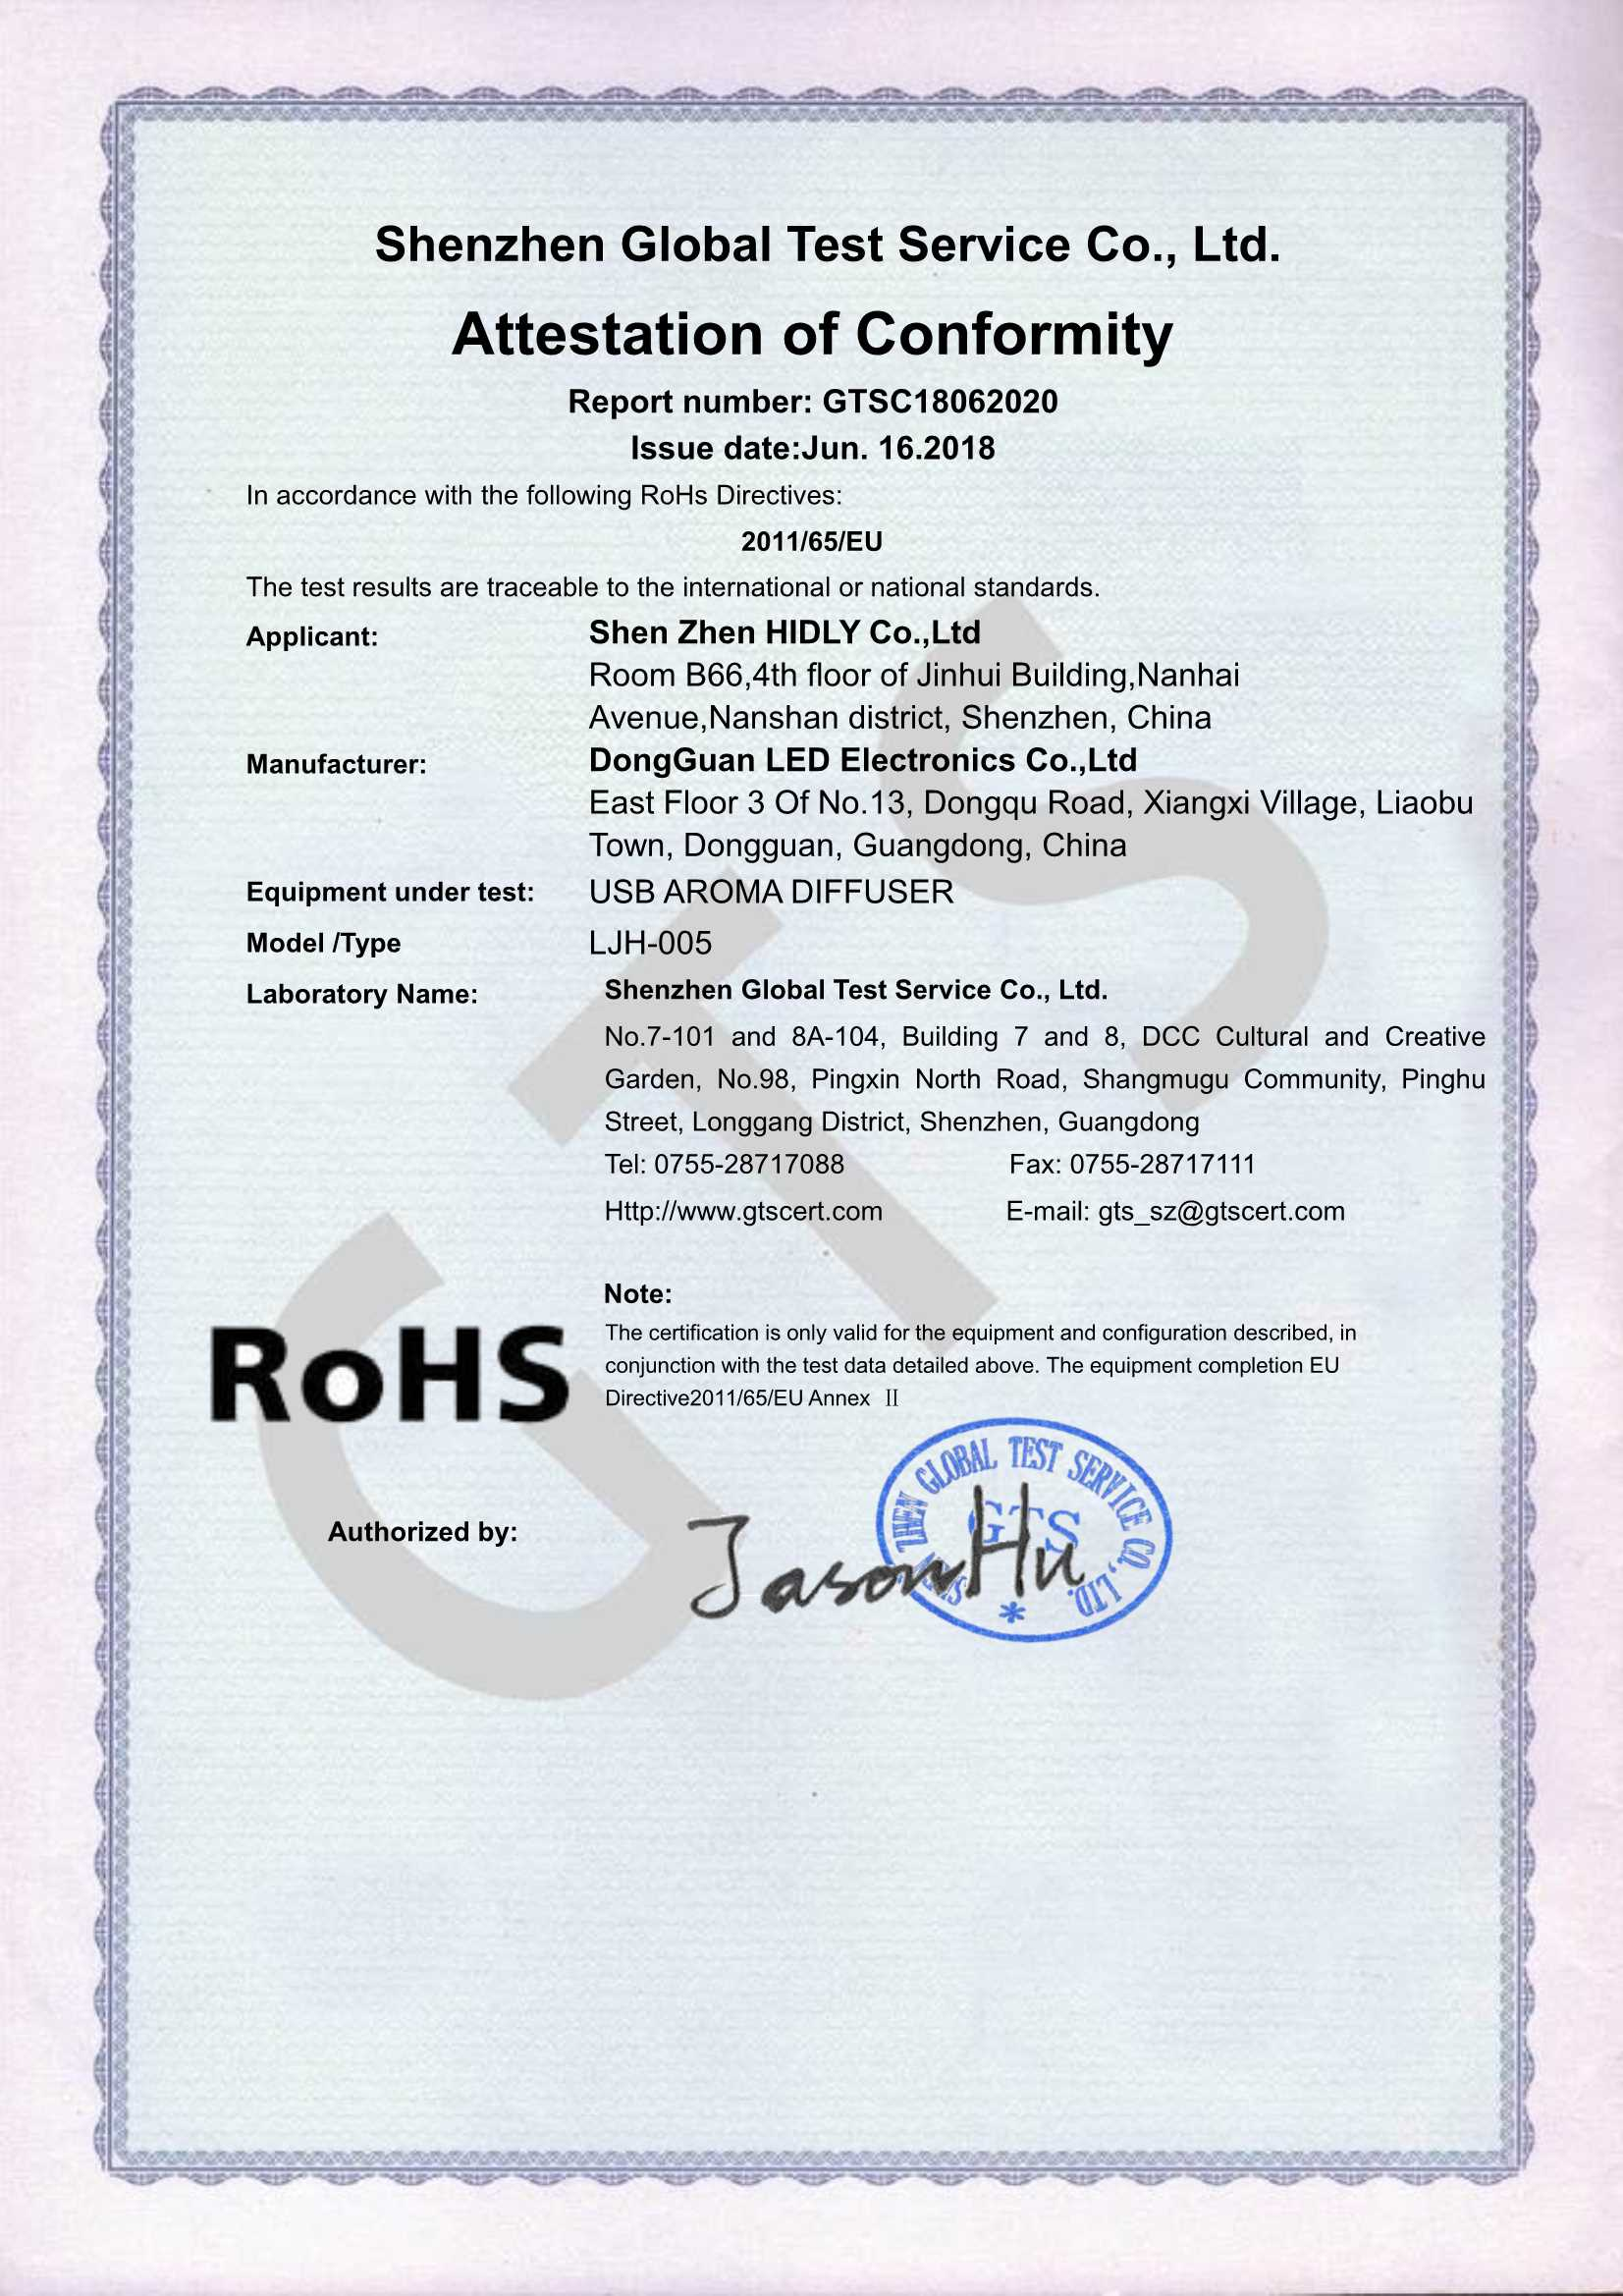 Our aroma humidifier(LJH005)have acquired ROHS Certifications: